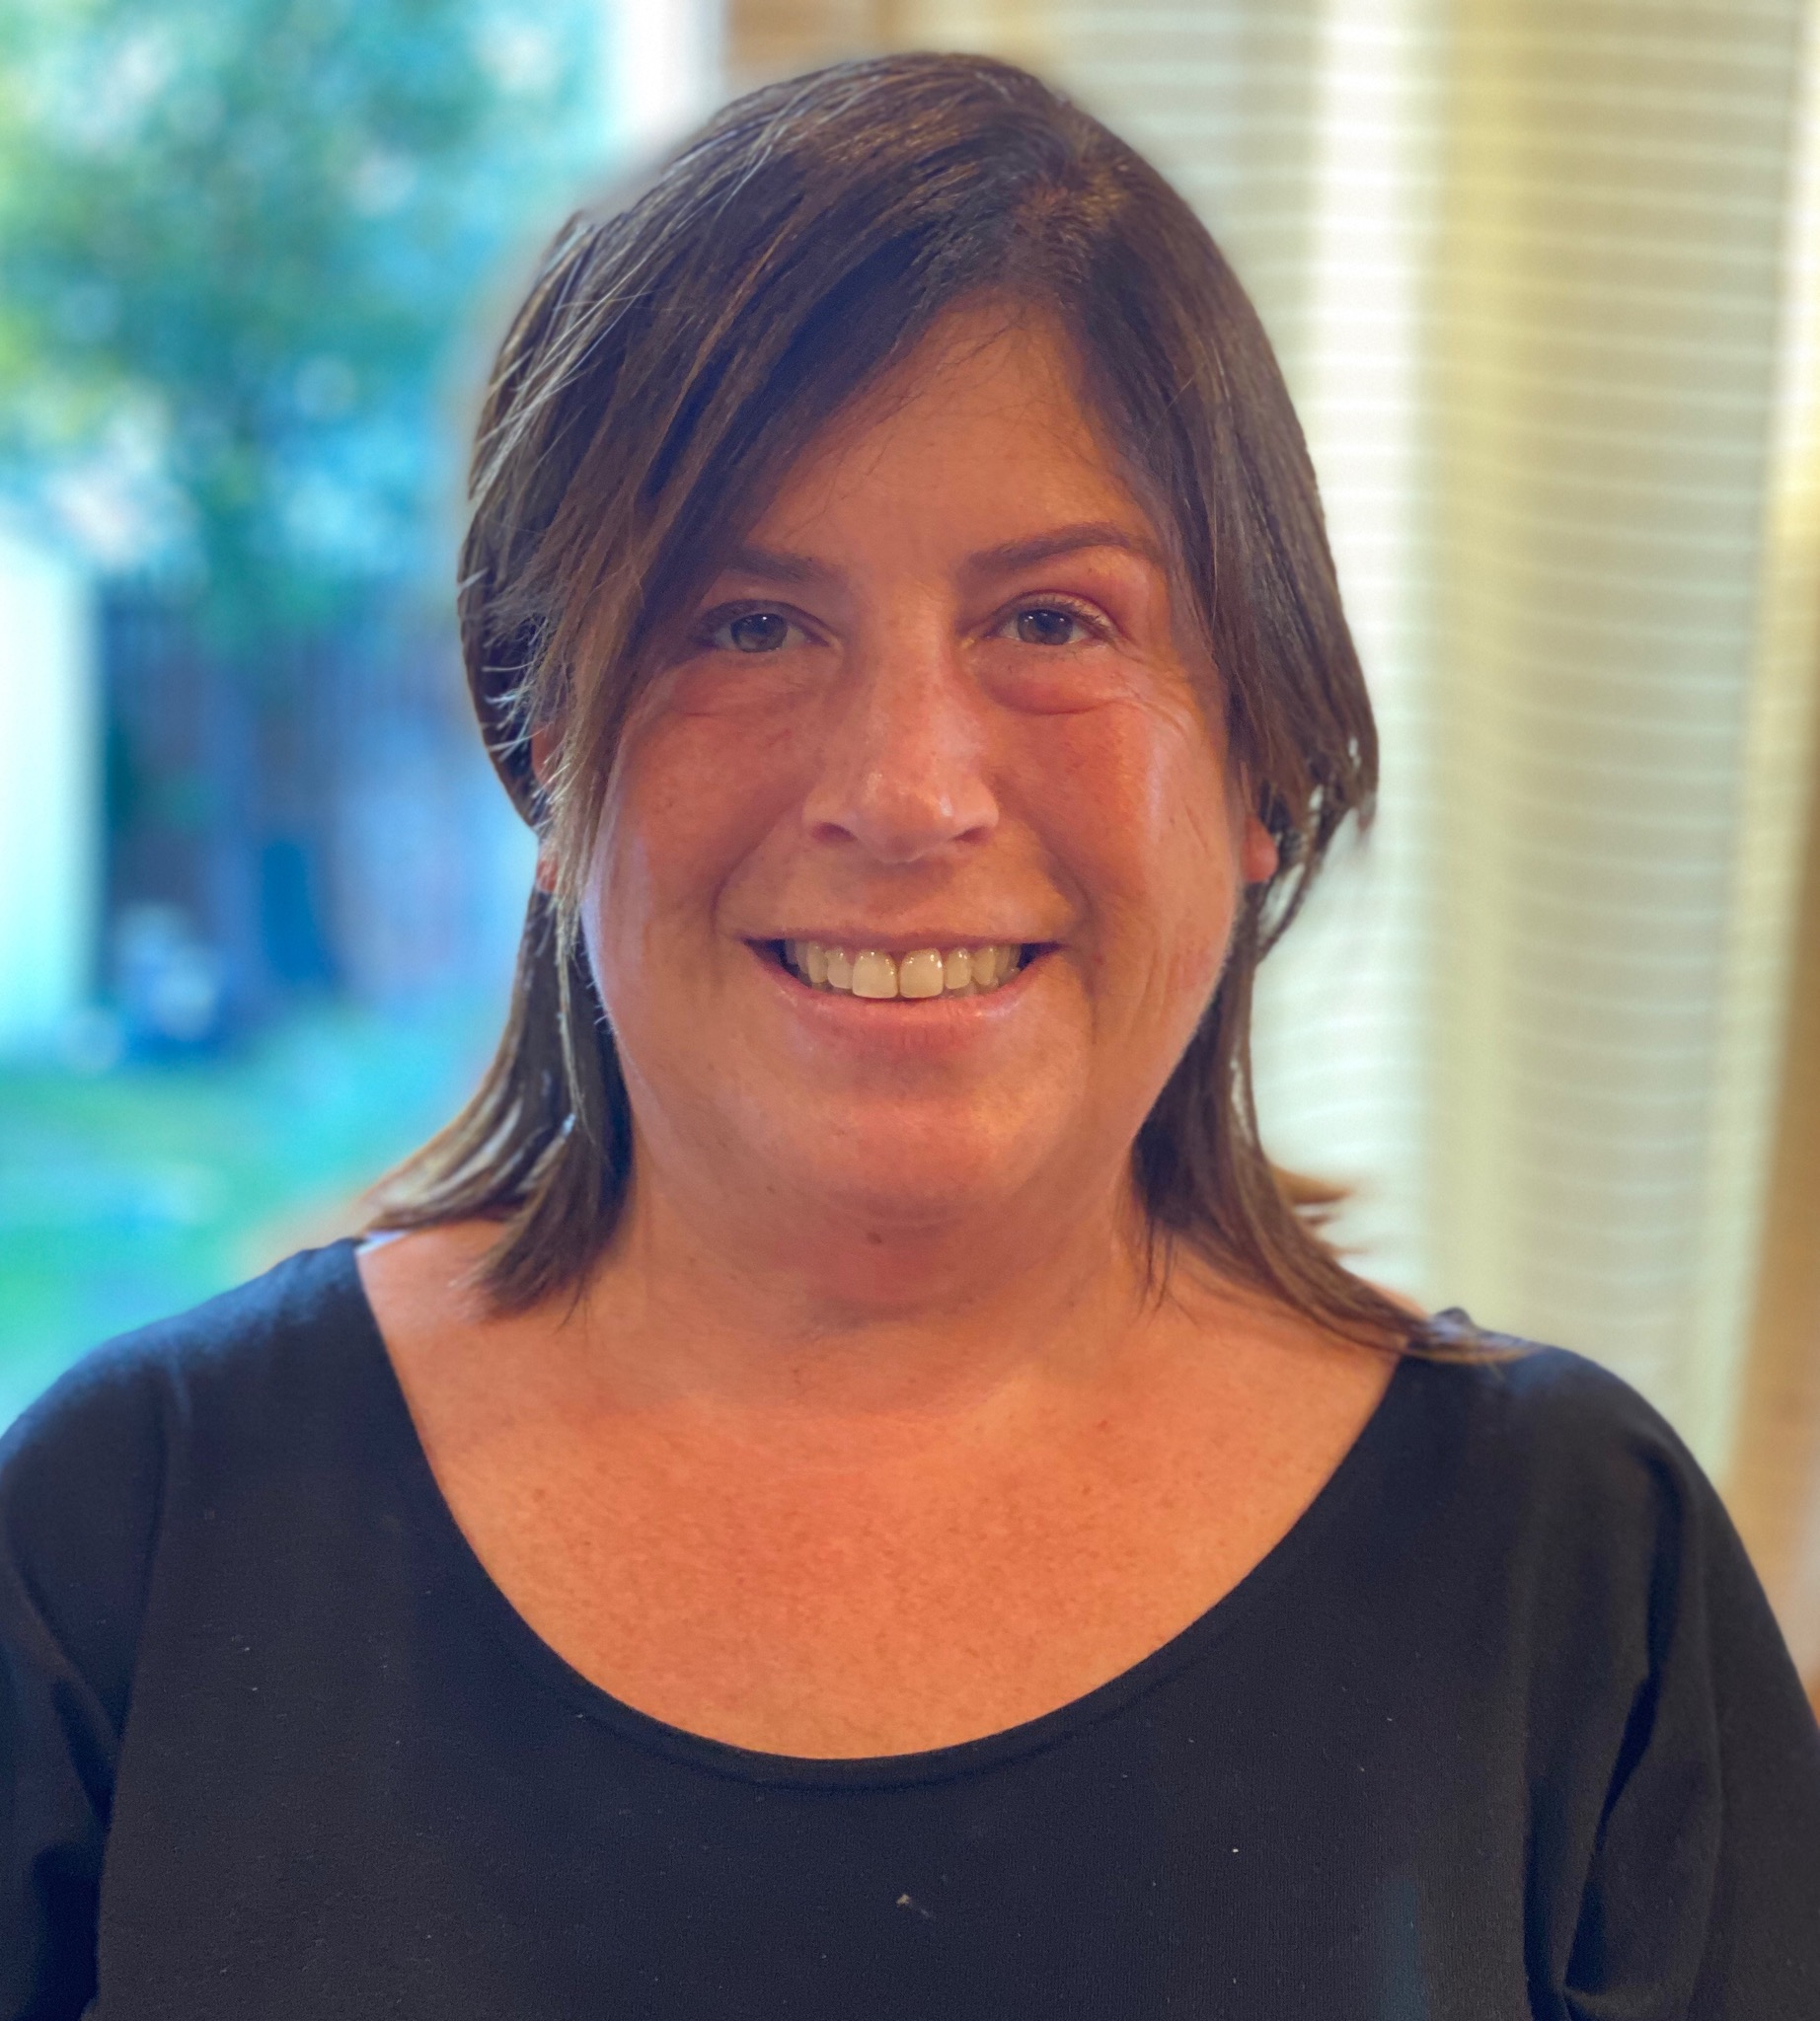 Commonpoint Queens Hires New Director of Early Childhood Education